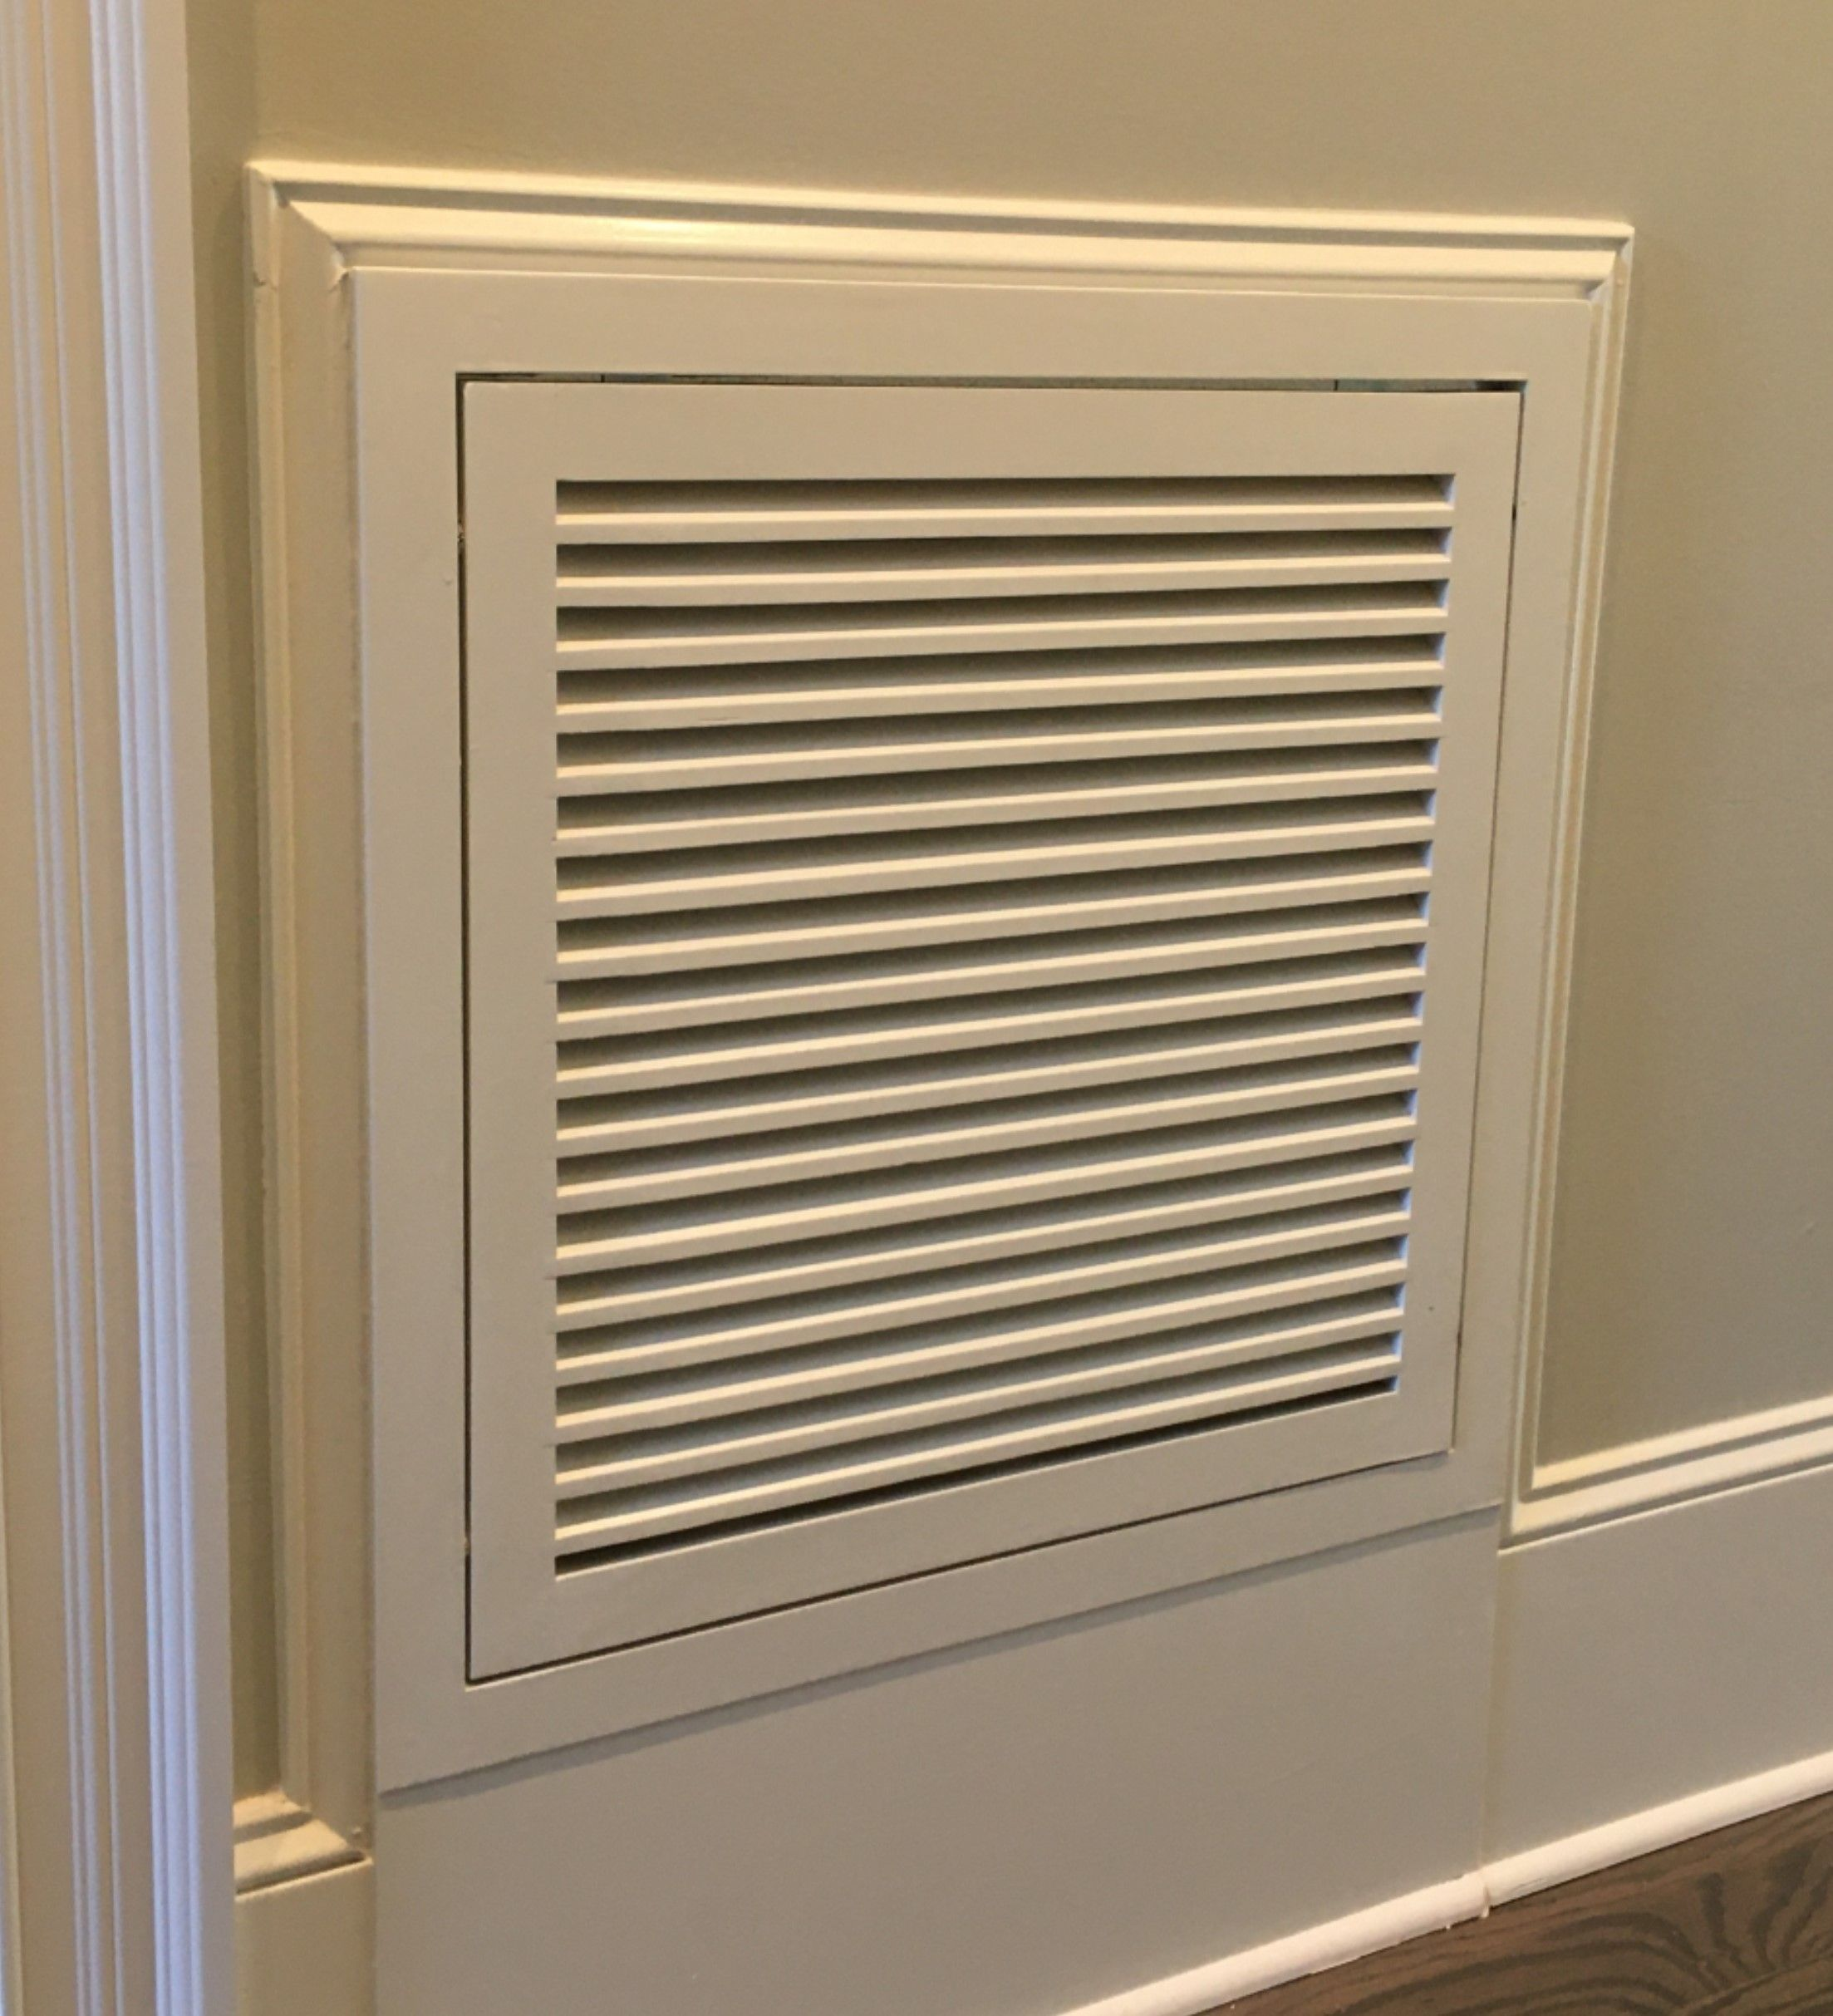 Wood Return Air Filter Grille at Baseboard in 2020 Air